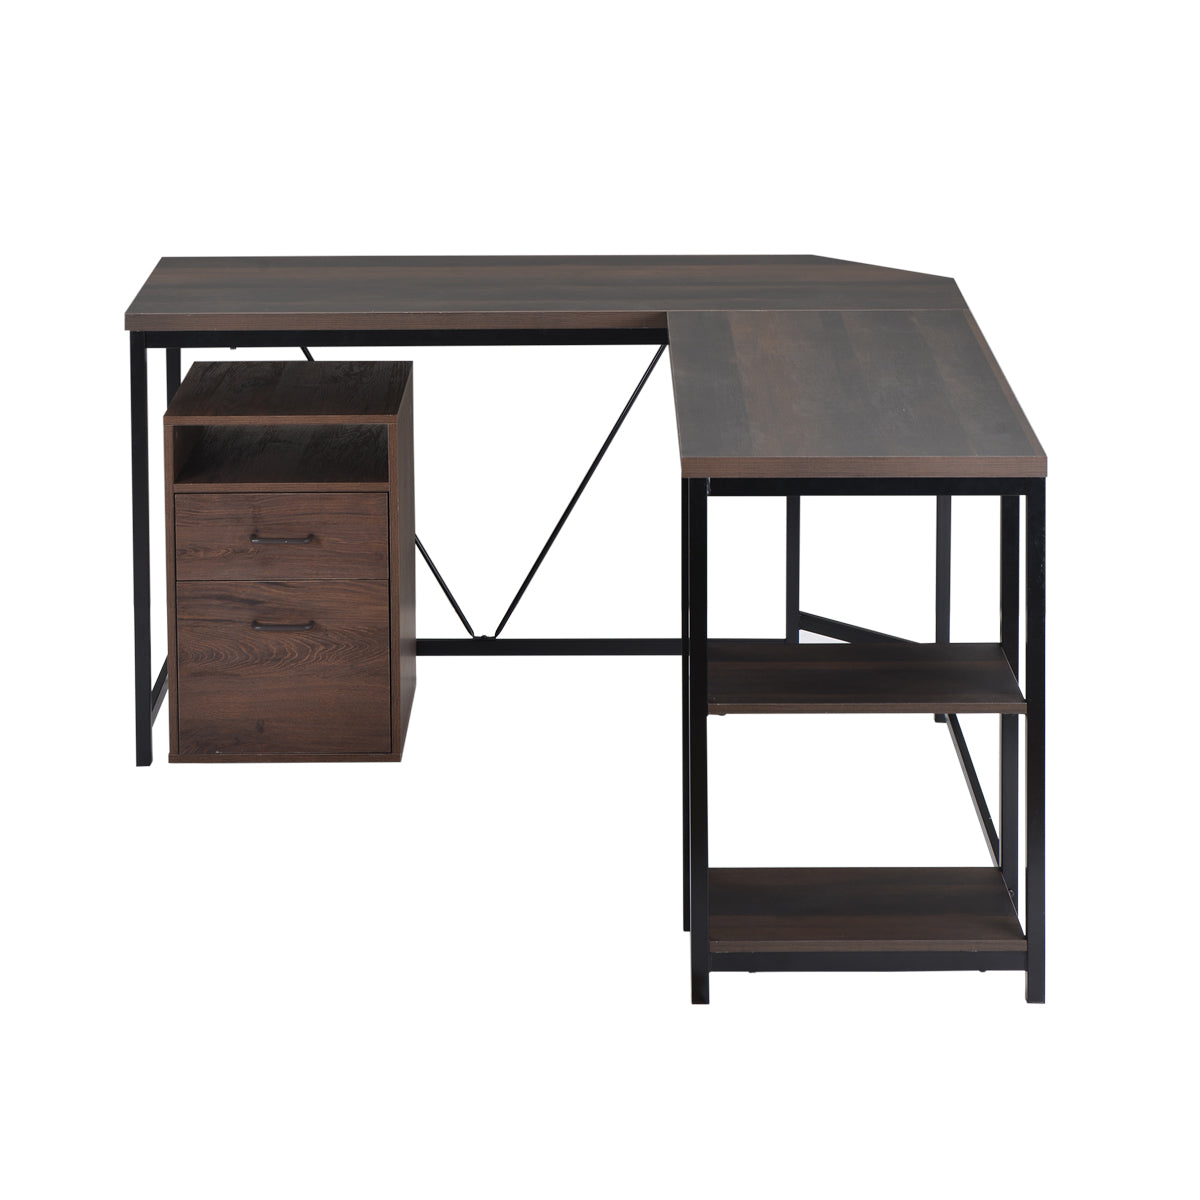 L-Shaped Computer Desk with 2-Tier Storage Shelves for Home Office Walnut